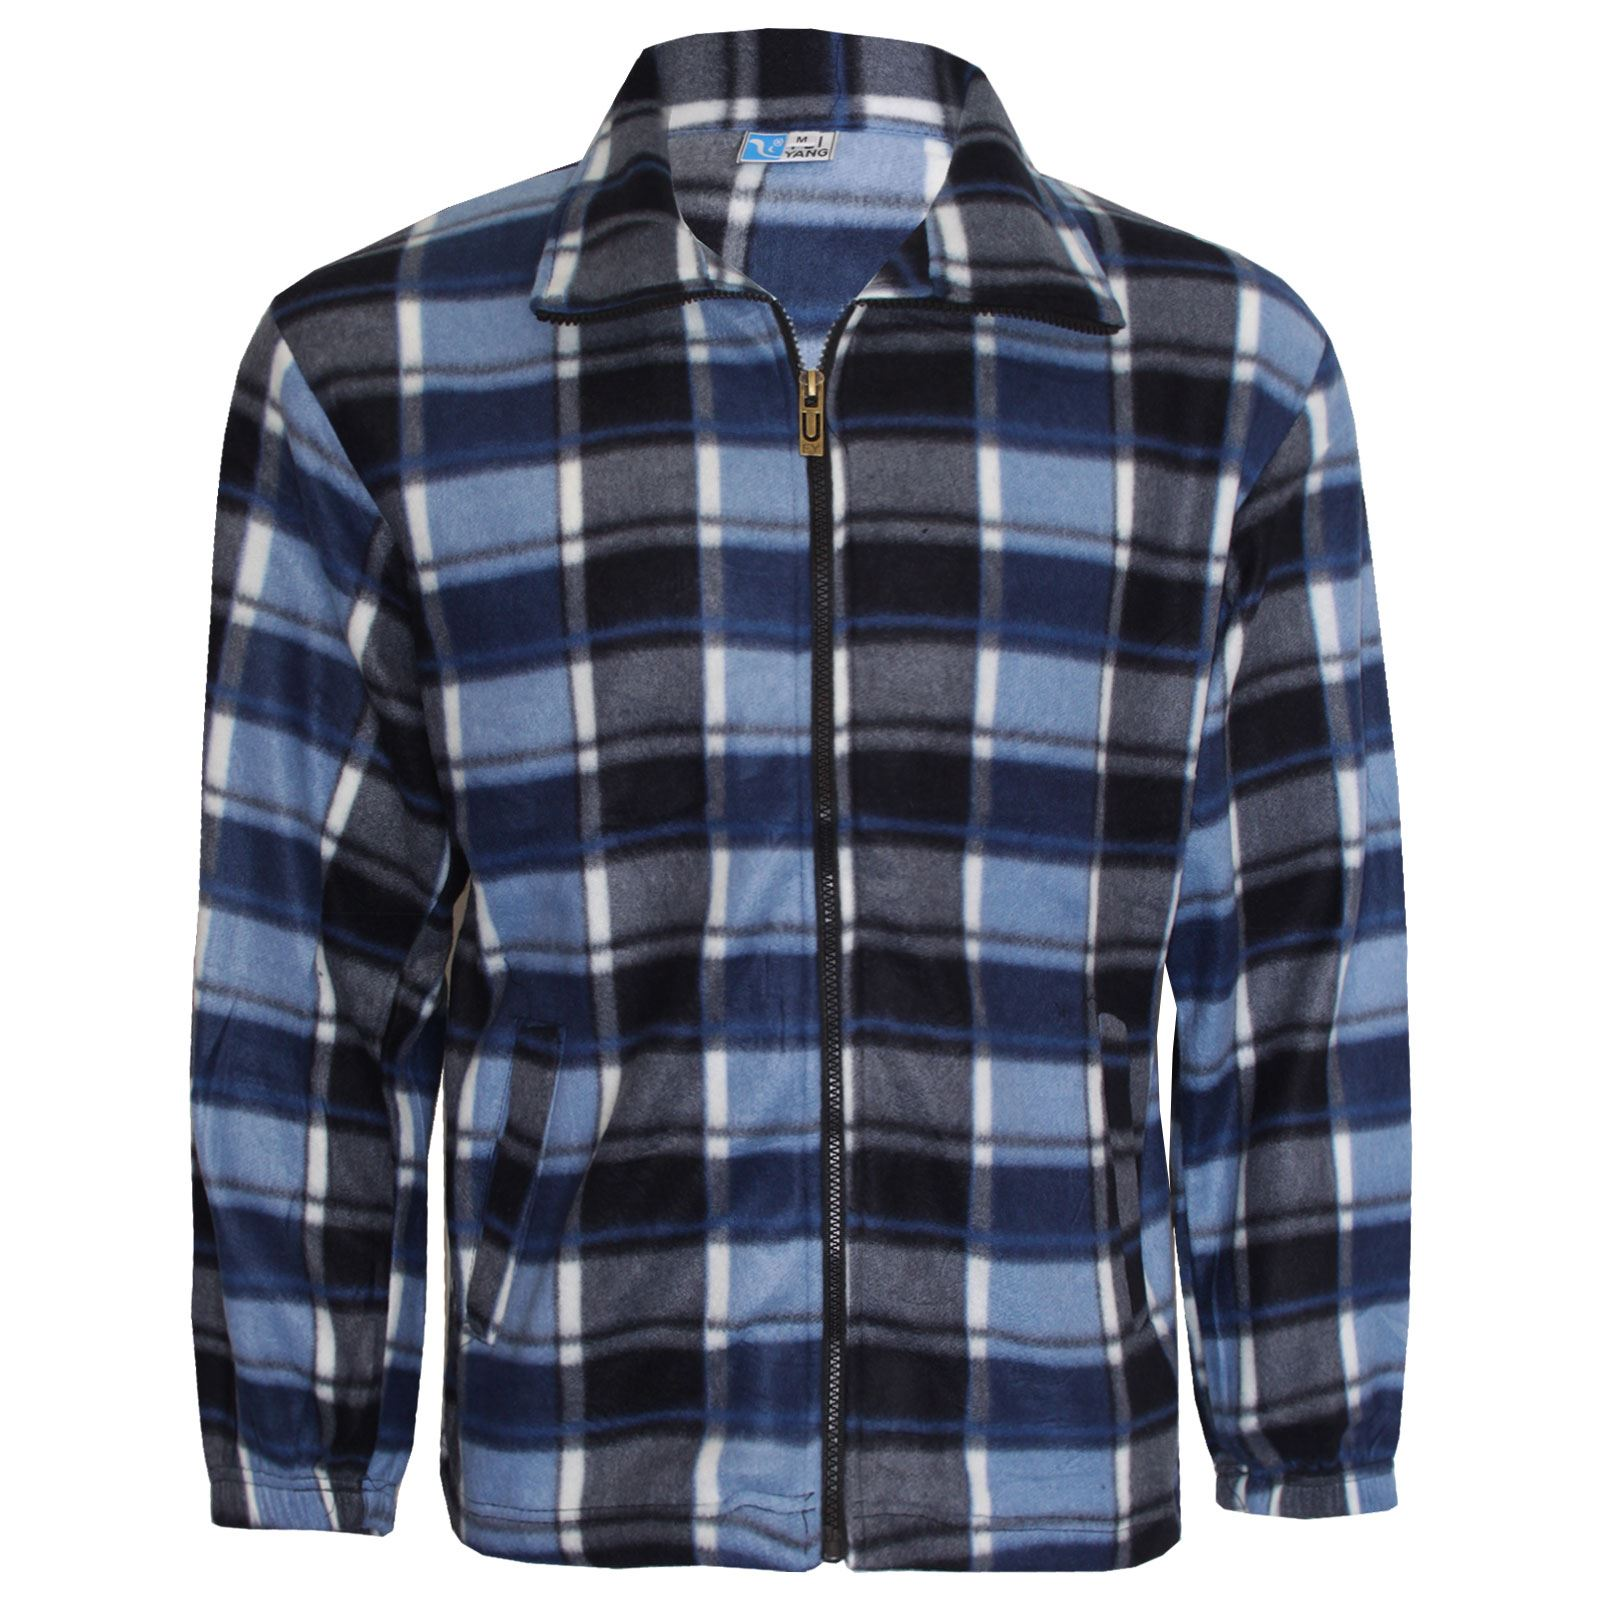 new mens lumber jack work shirt flannel jacket winter warm